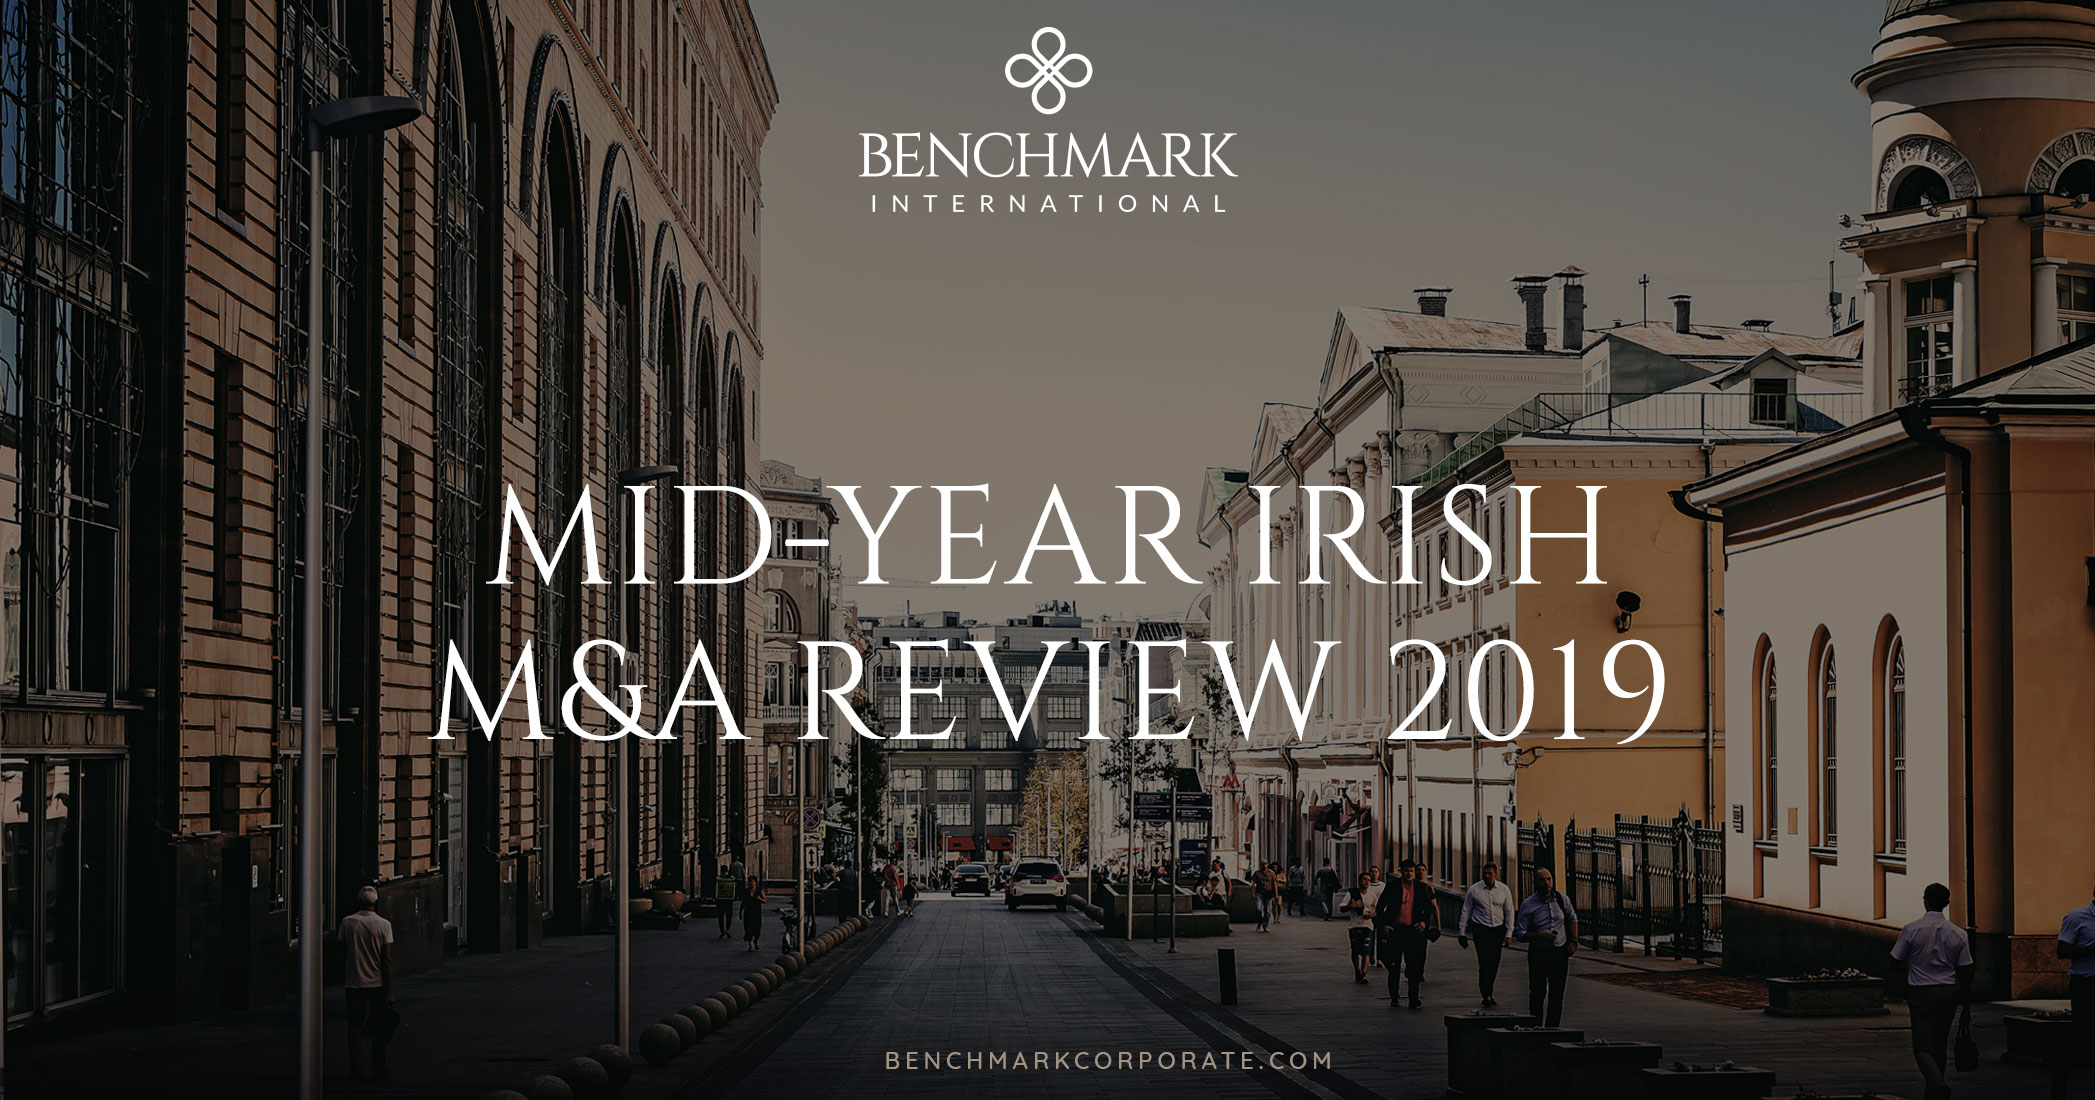 Mid-Year Irish M&A Review 2019